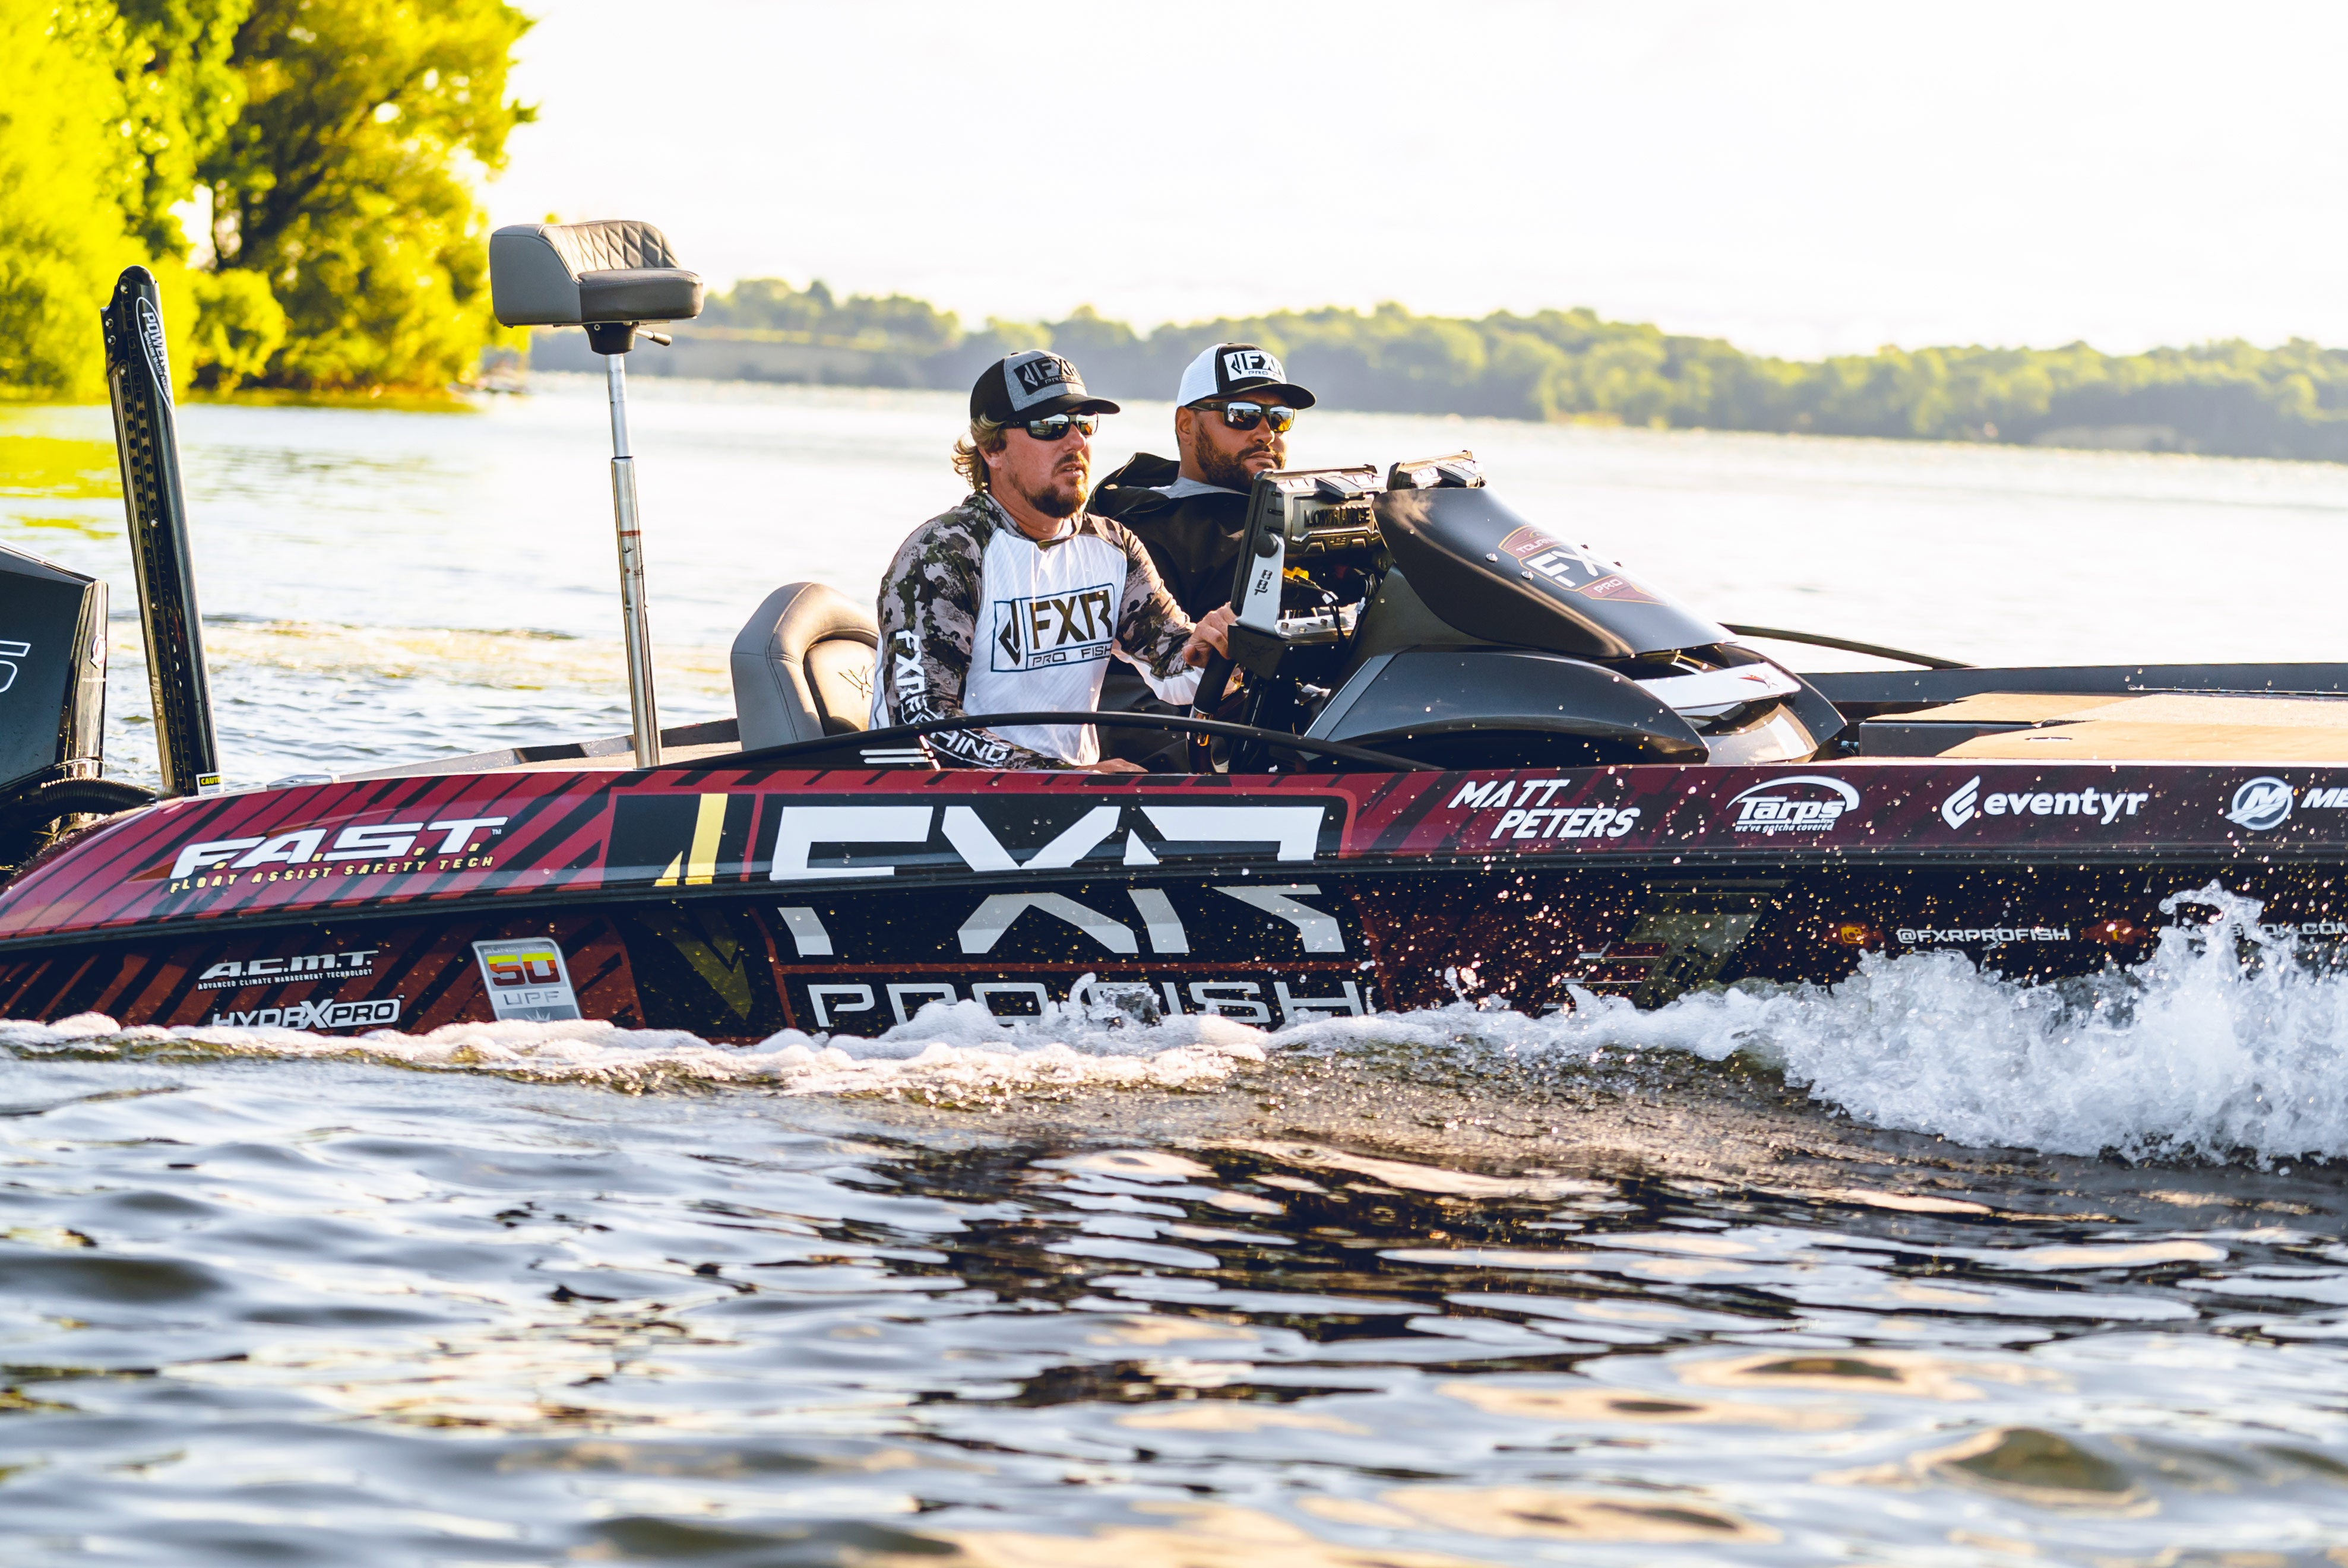 Image of tournament anglers Matt Peters and Dustin Byfuglien on the water in their custom wrapped Pro Fish Vexus bass boat on a beautiful sunny day.